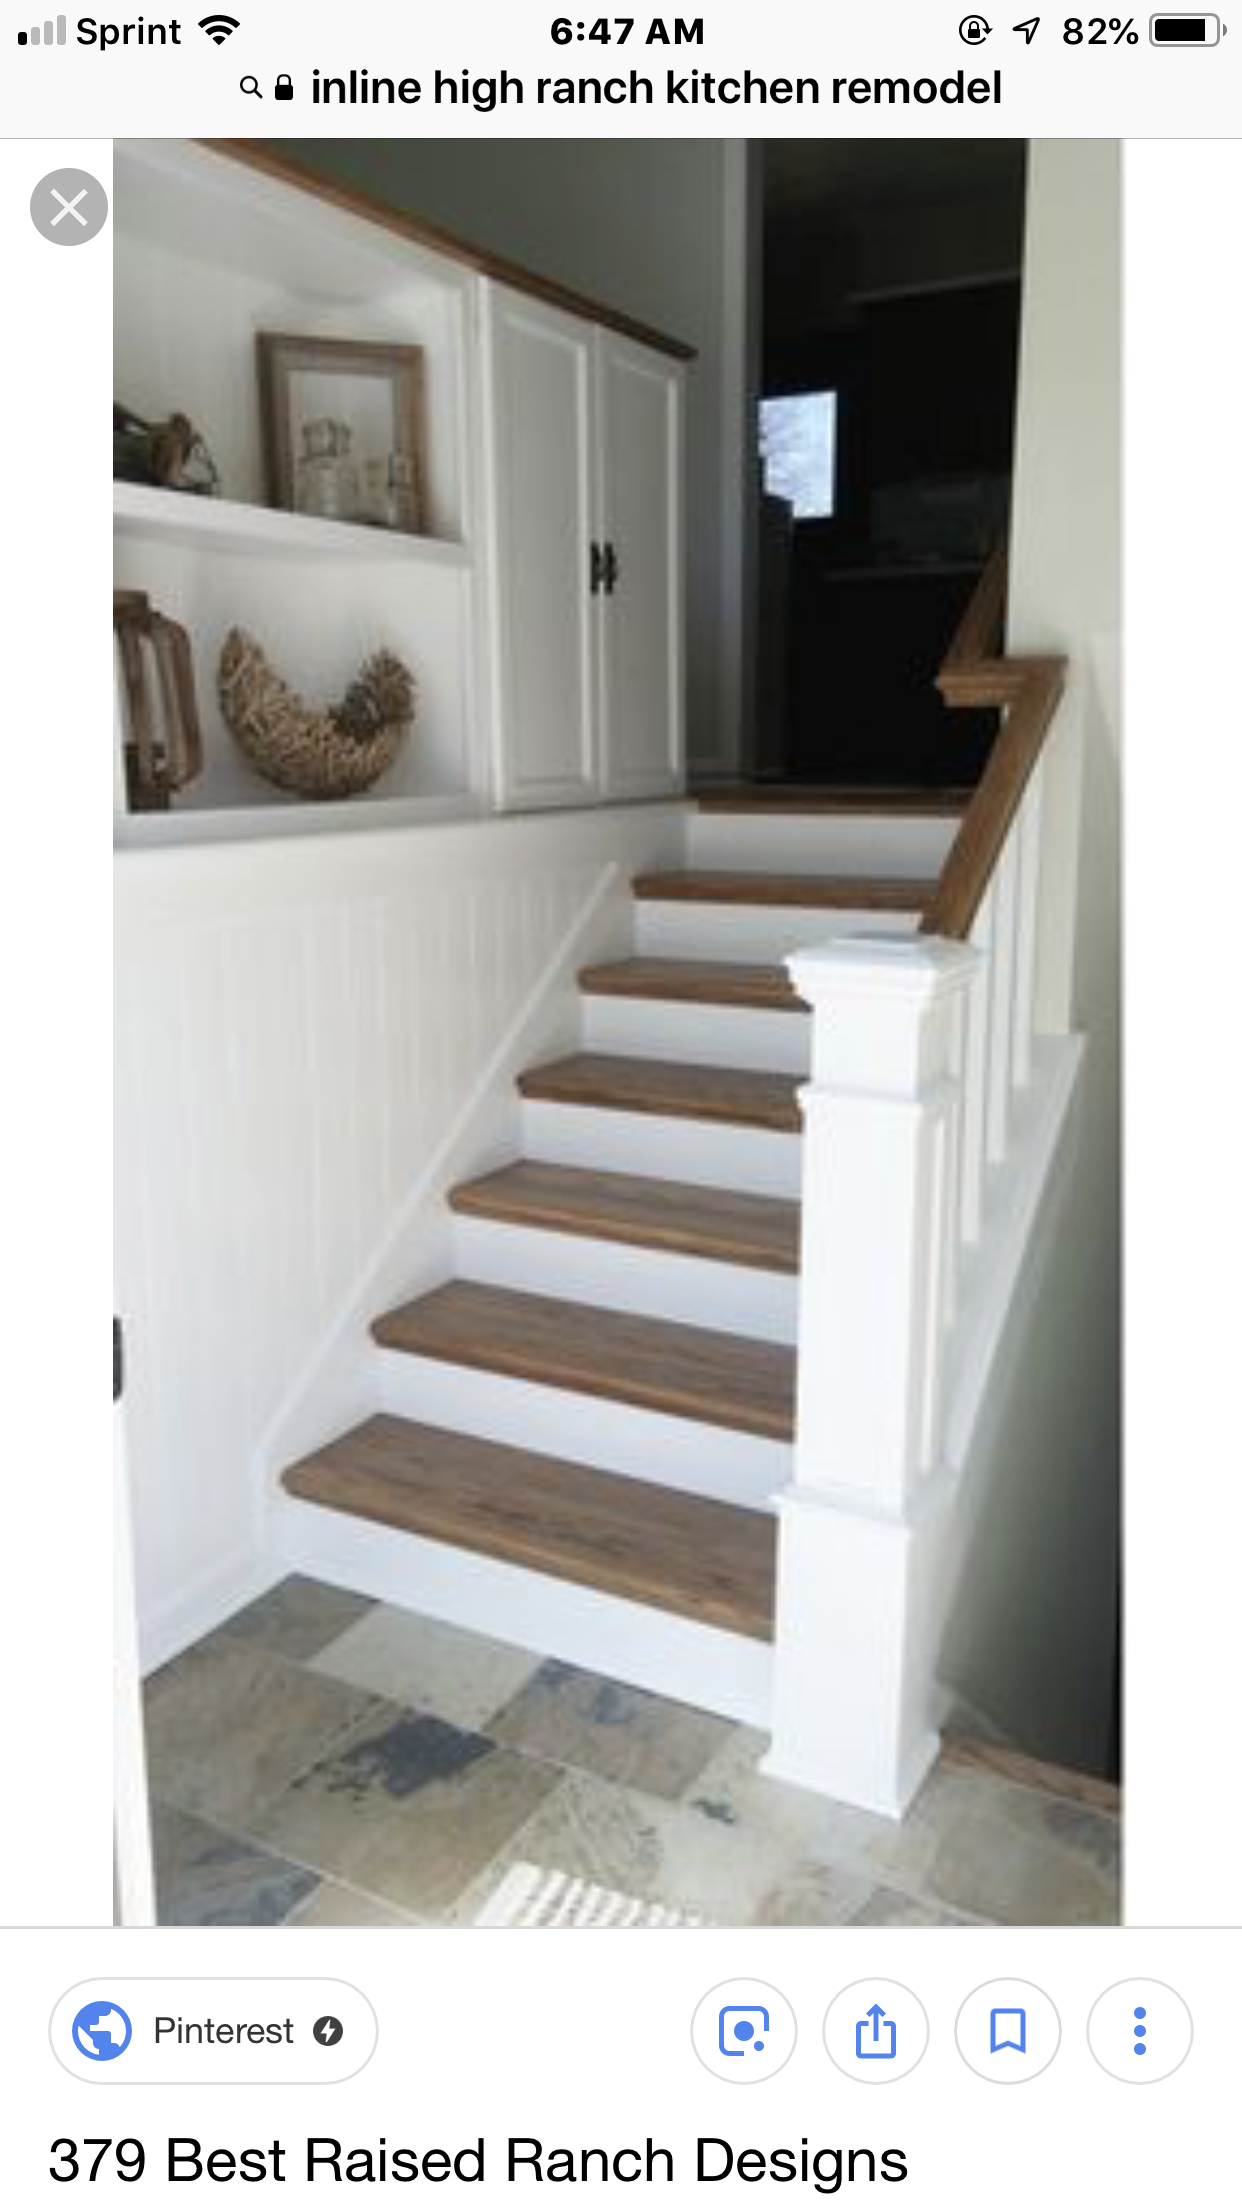 High Inline Ranch Entryway Remodel   Kitchen Remodel Ideas ... on rancher remodel, raised ranch basement remodel, kitchen counter remodel,